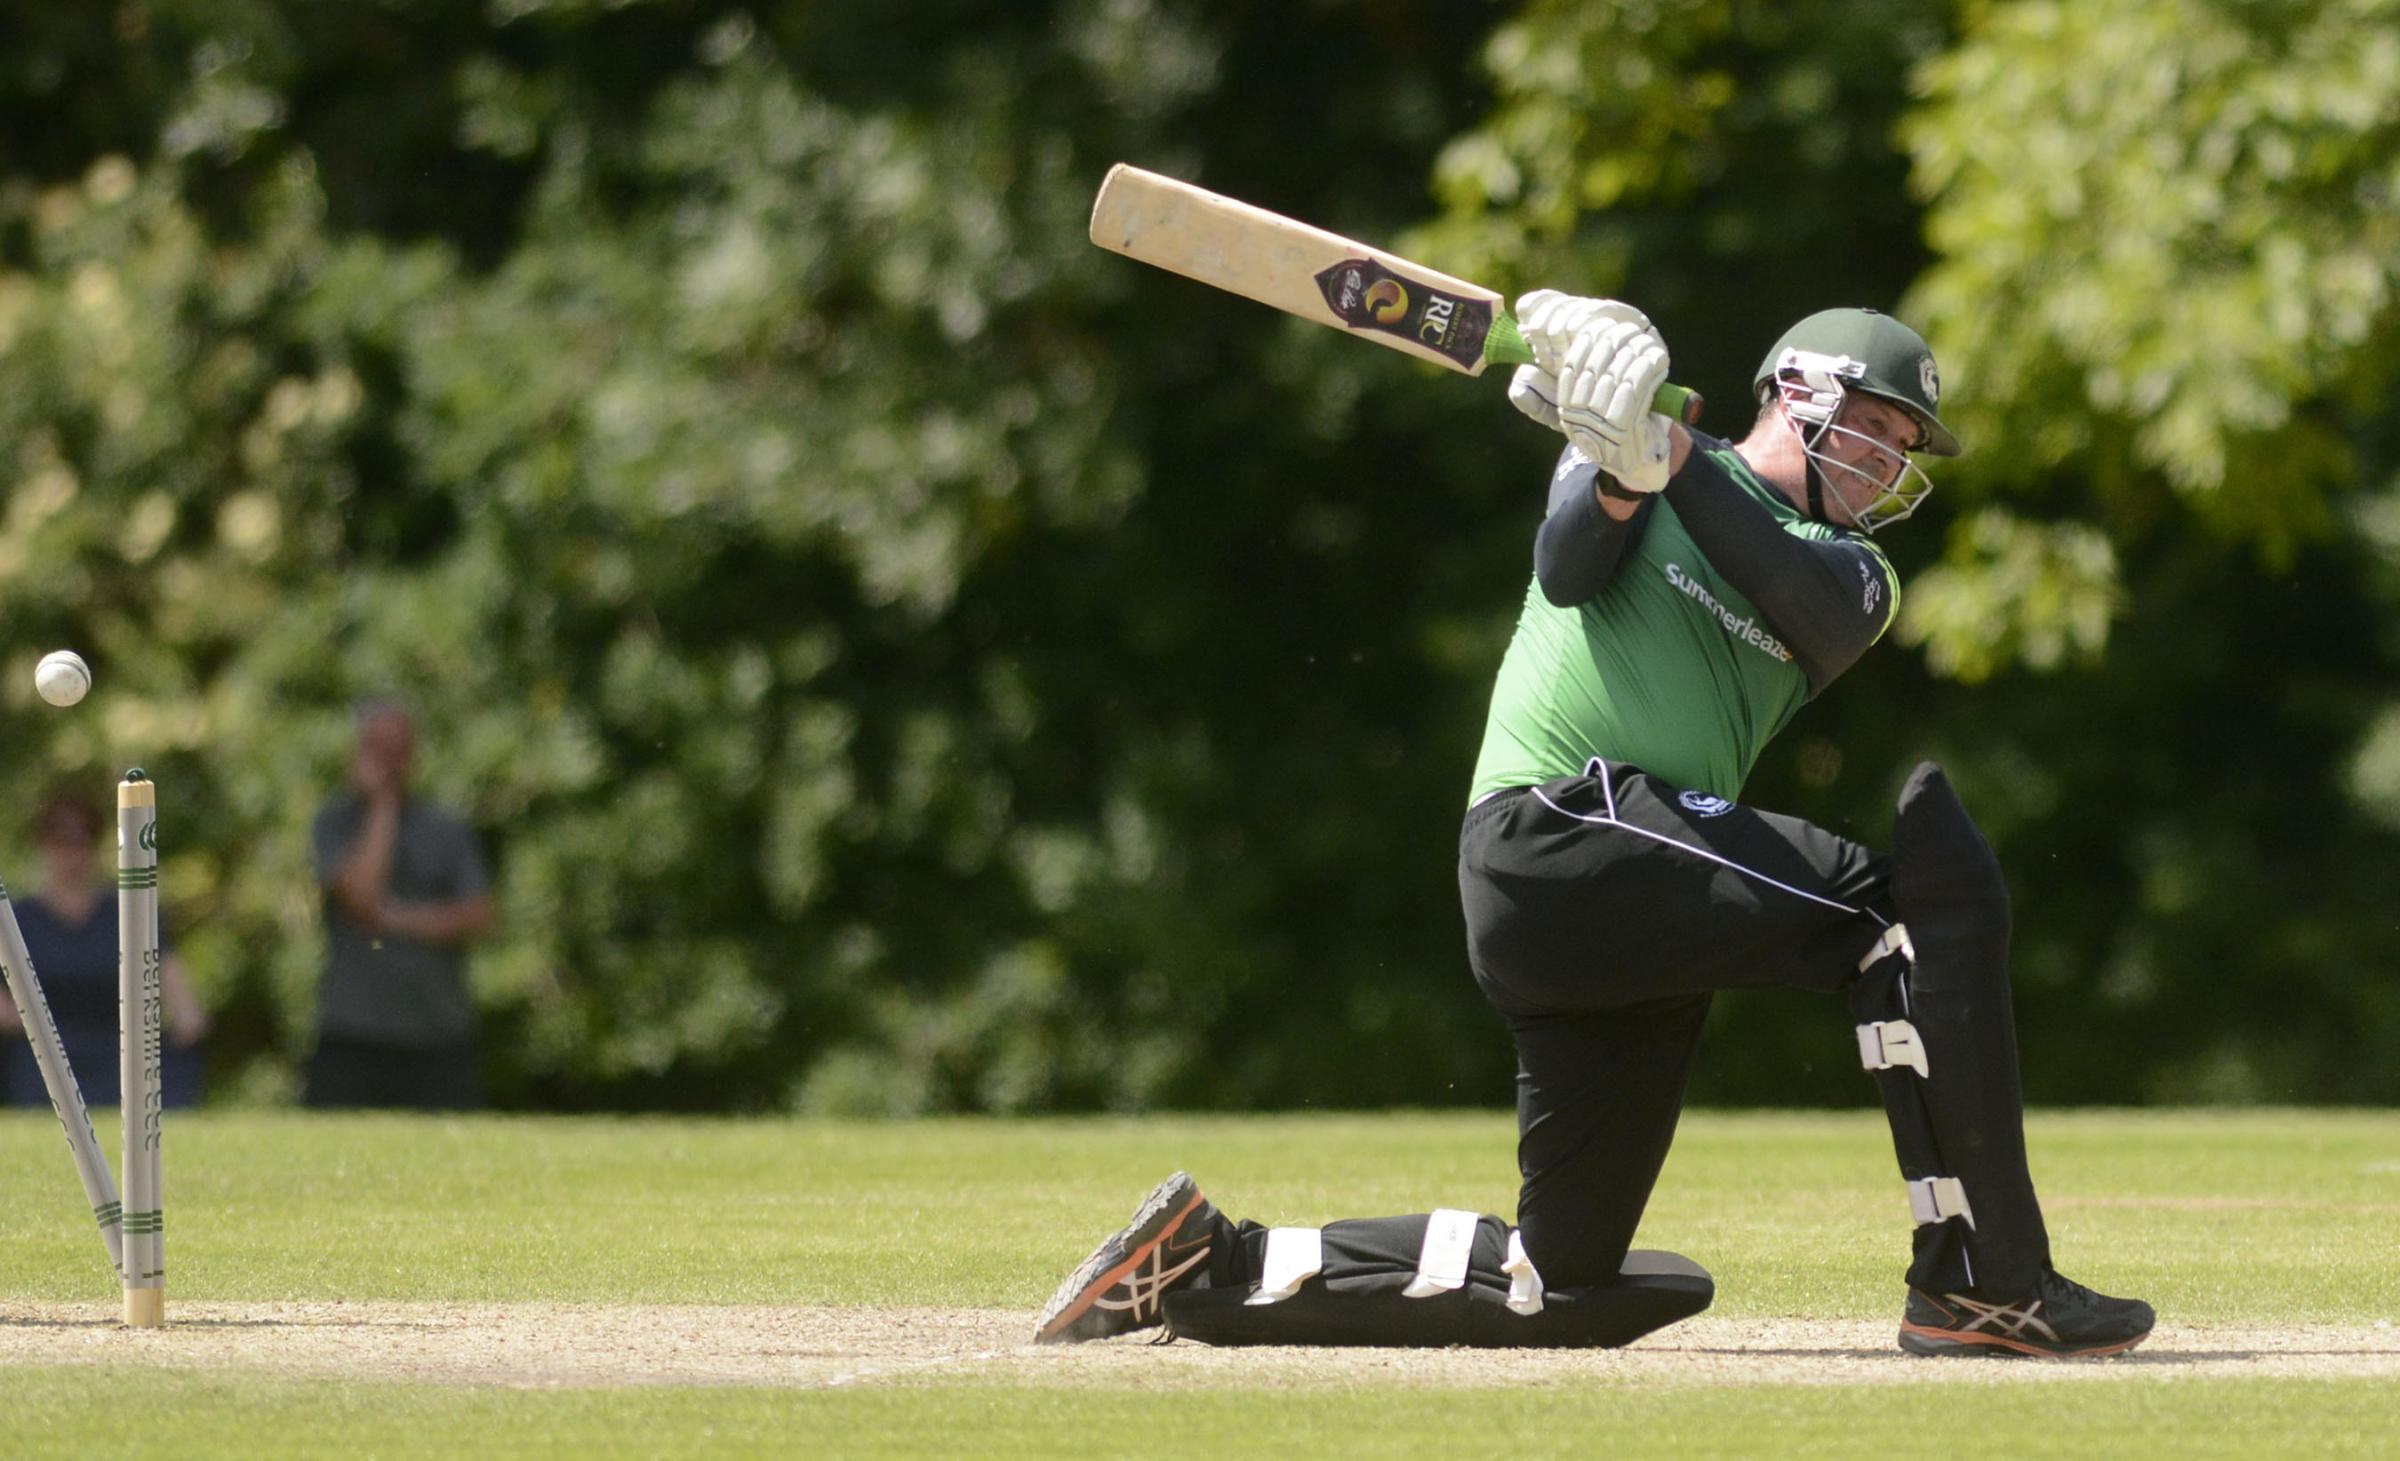 Berkshire's Chris Peploe is bowled   Picture by Paul Johns   180614